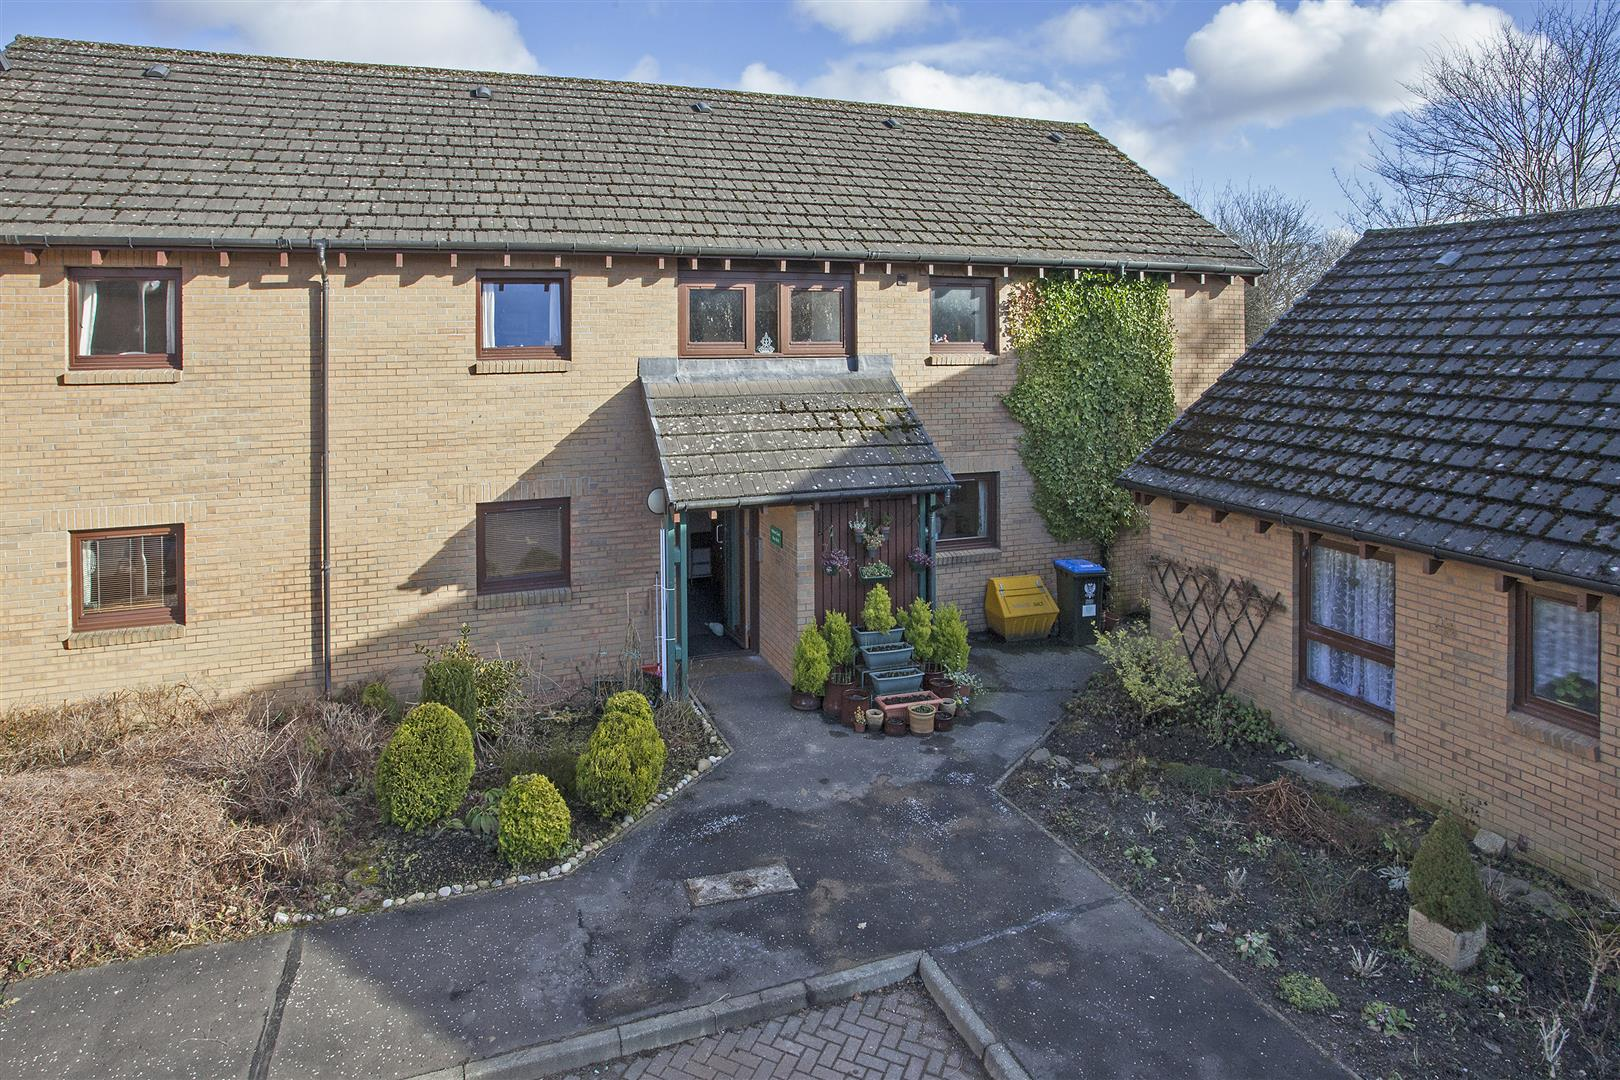 18, Aldour Court, Pitlochry, Perthshire, PH16 5BG, UK